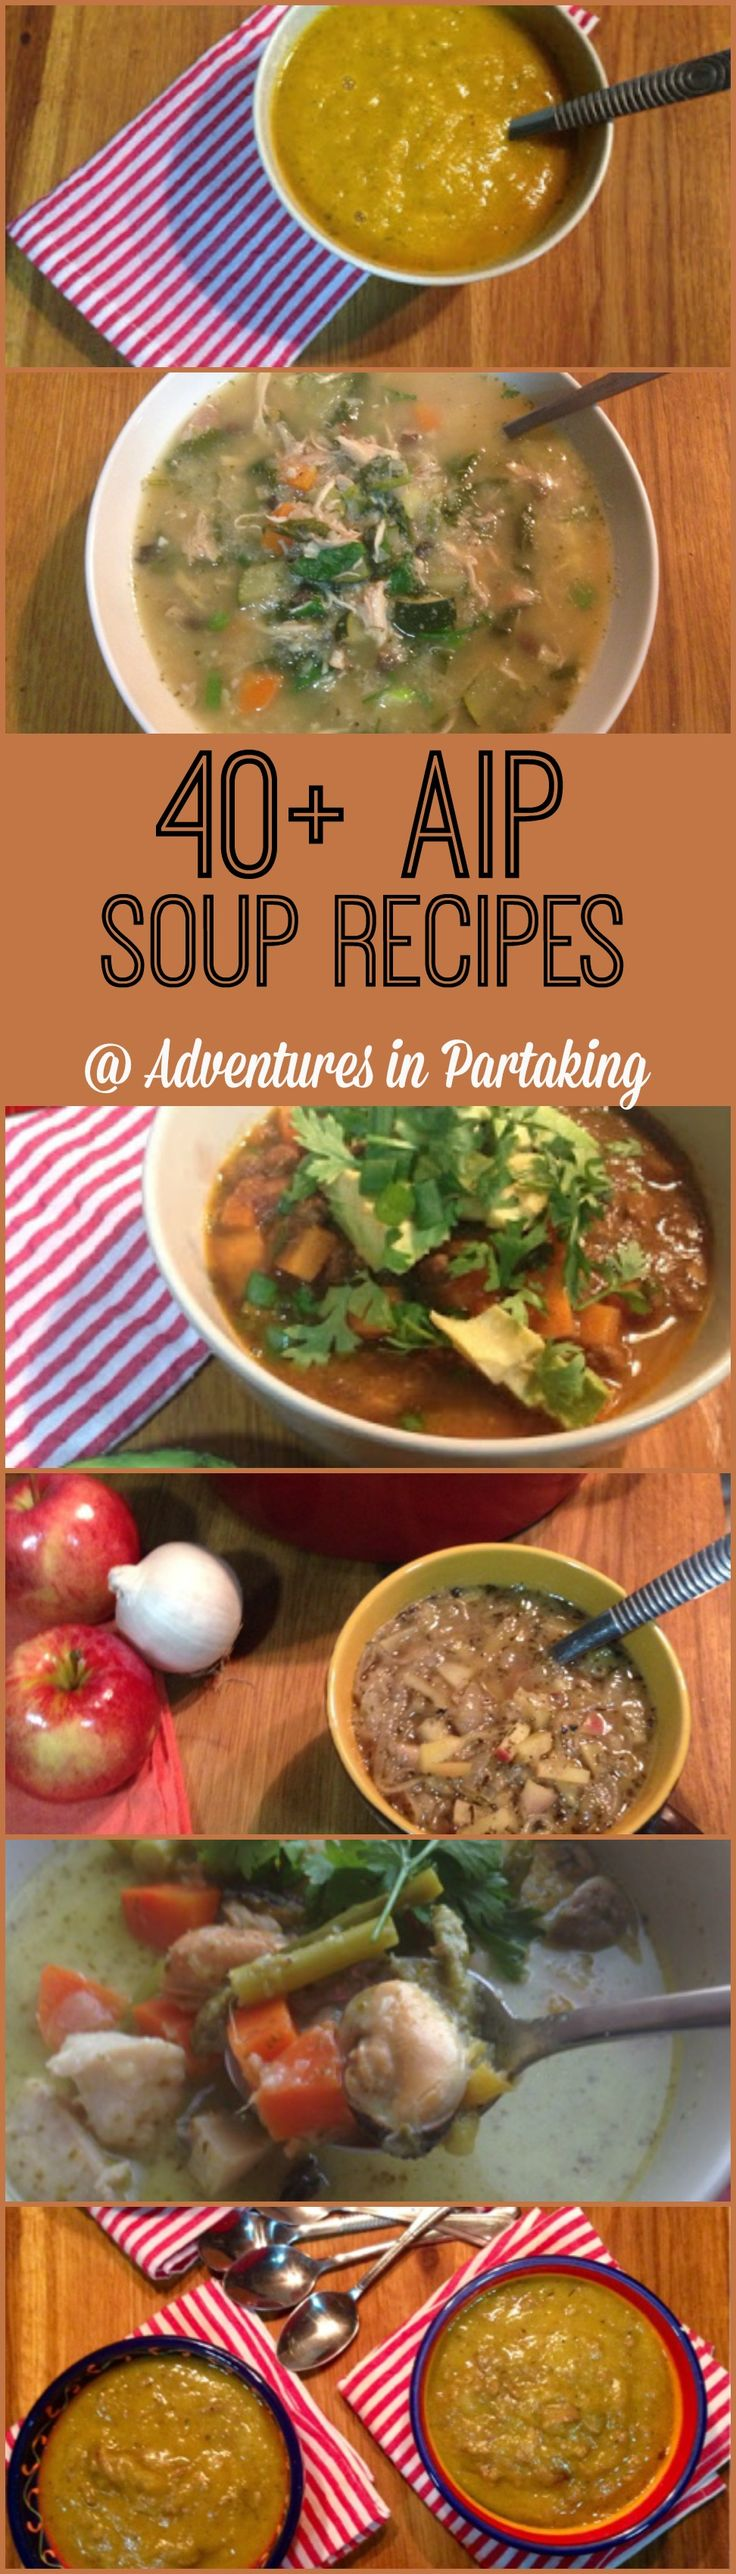 So, without further ado... here are 40+ AIP soup recipes, plus a round-up of 38 more...so links to 80 soup recipes. What more could you ask for? Recipes for... bone broth, cold soups, vegetable soups, seafood soups, veggie soups, chicken soups, beef soups, chili, stews, curries and more one pot AIP goodness!